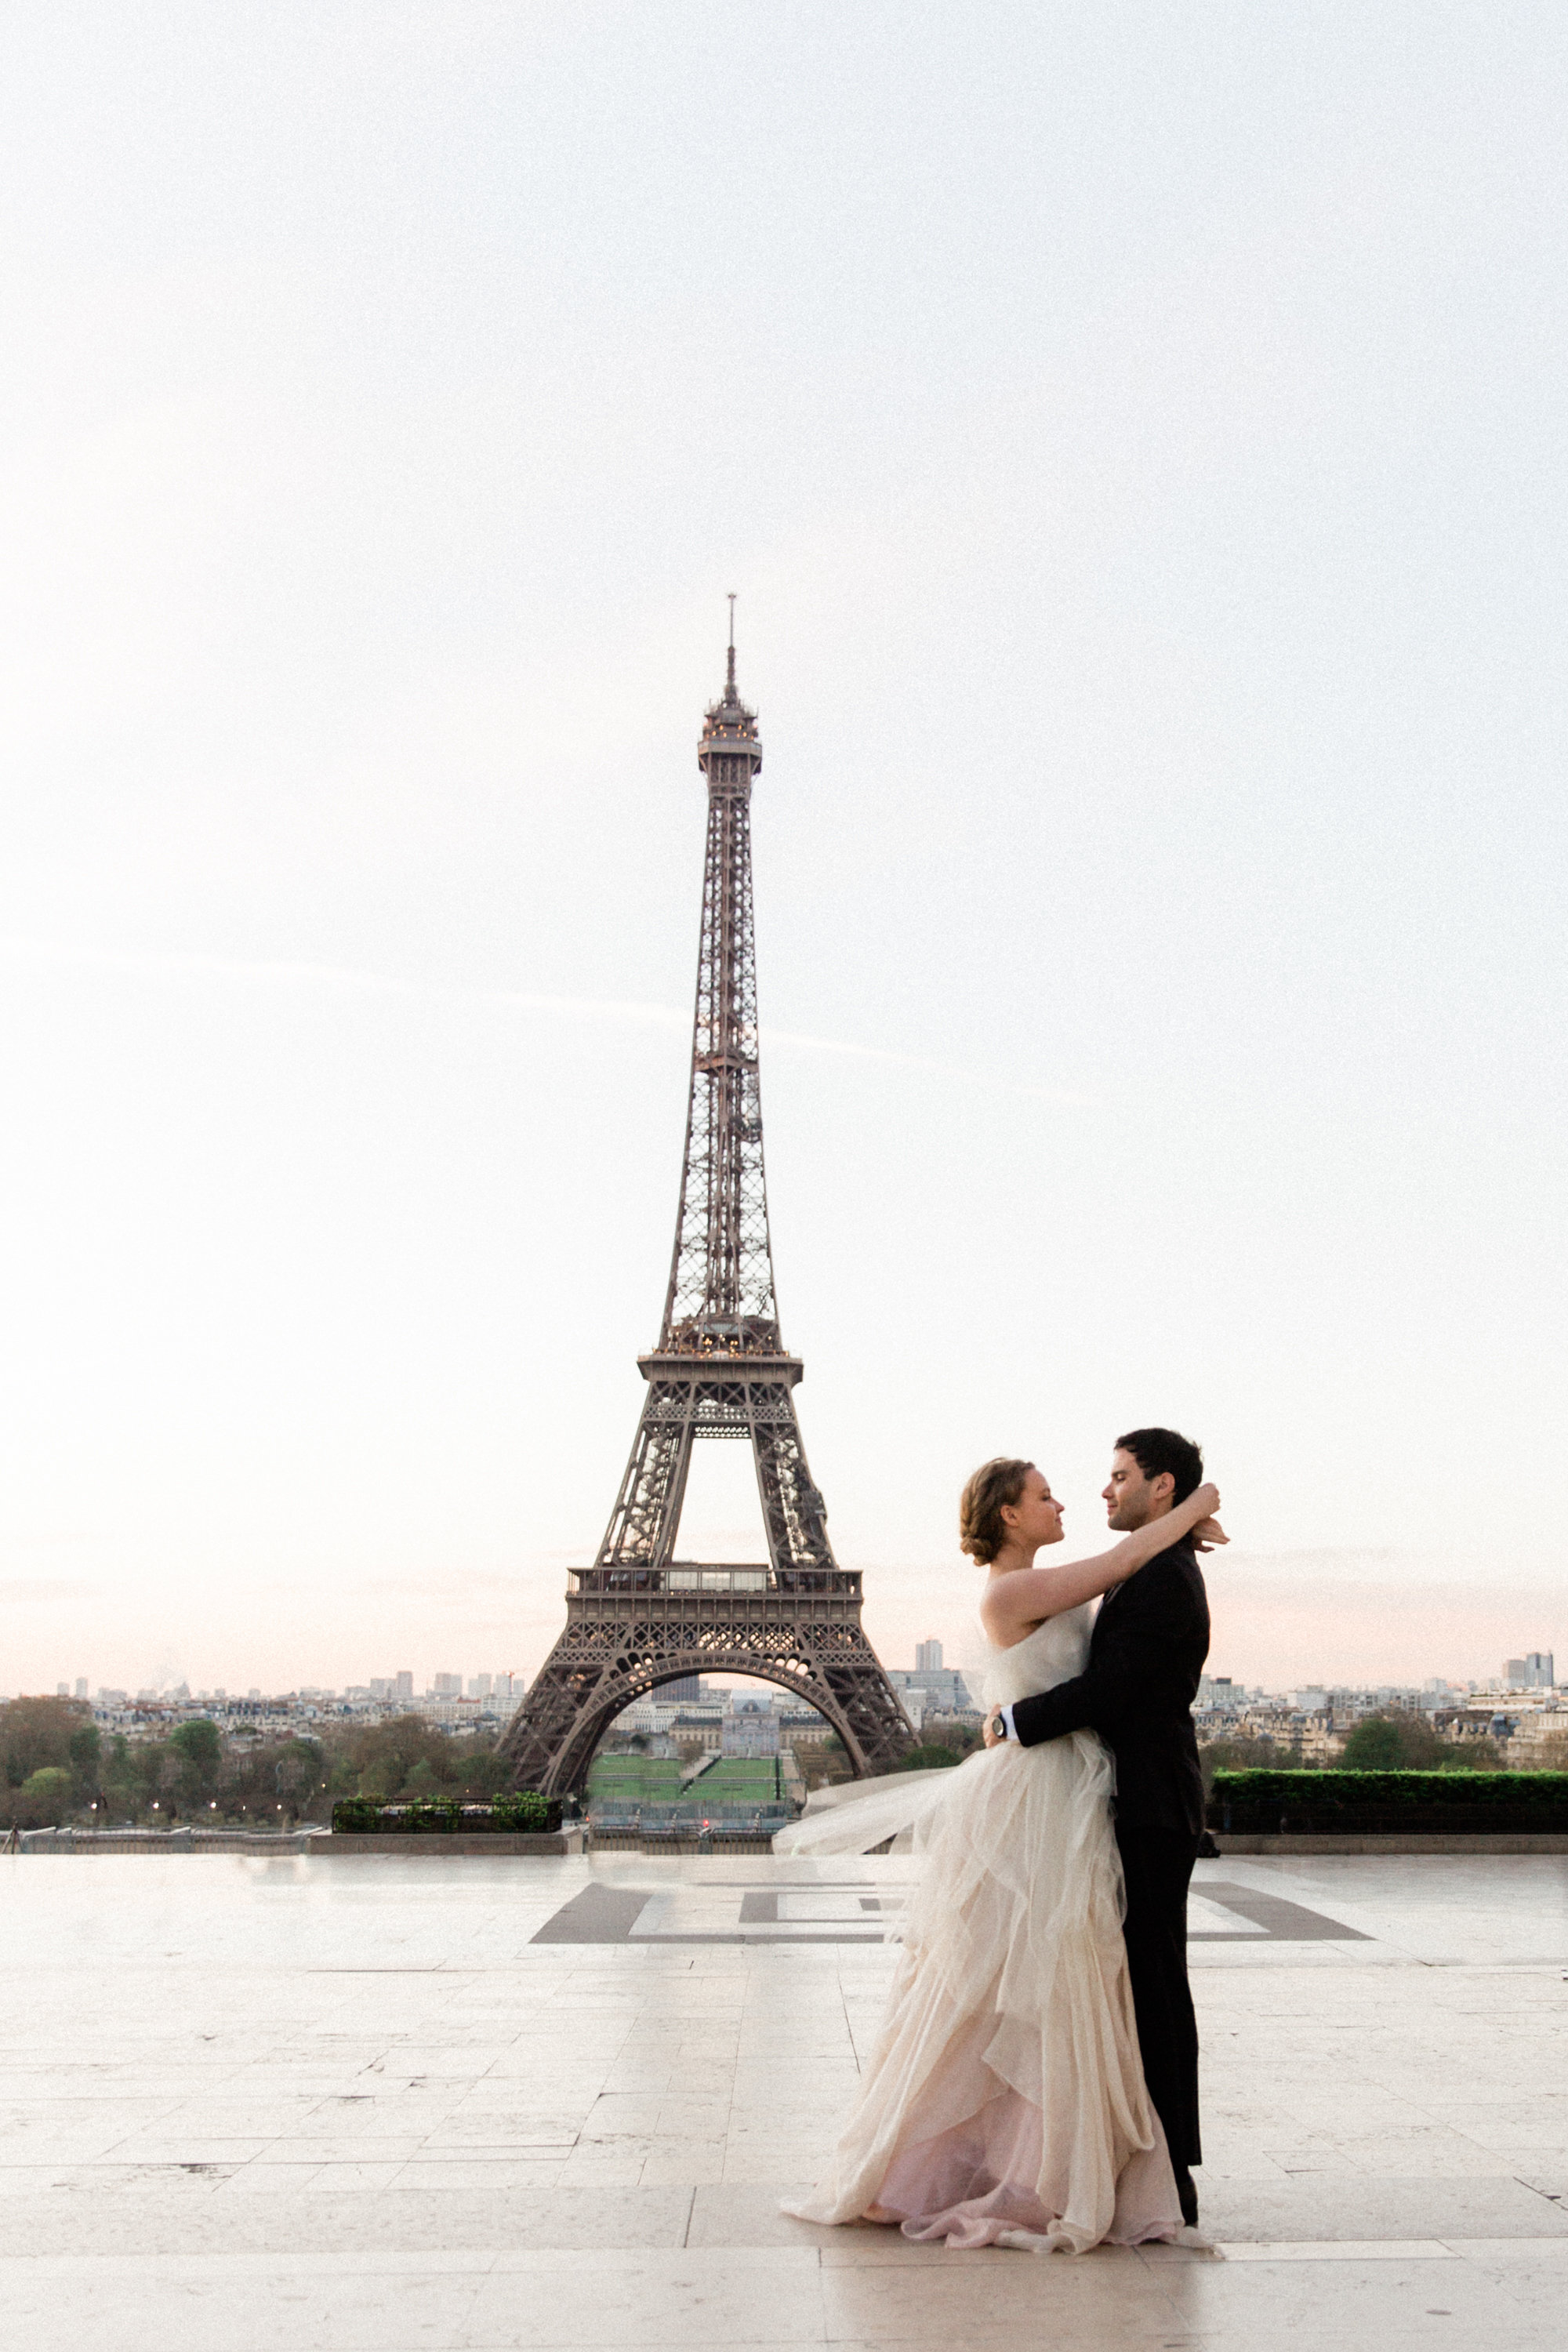 Grand palais wedding gown blush and tulle32.jpg